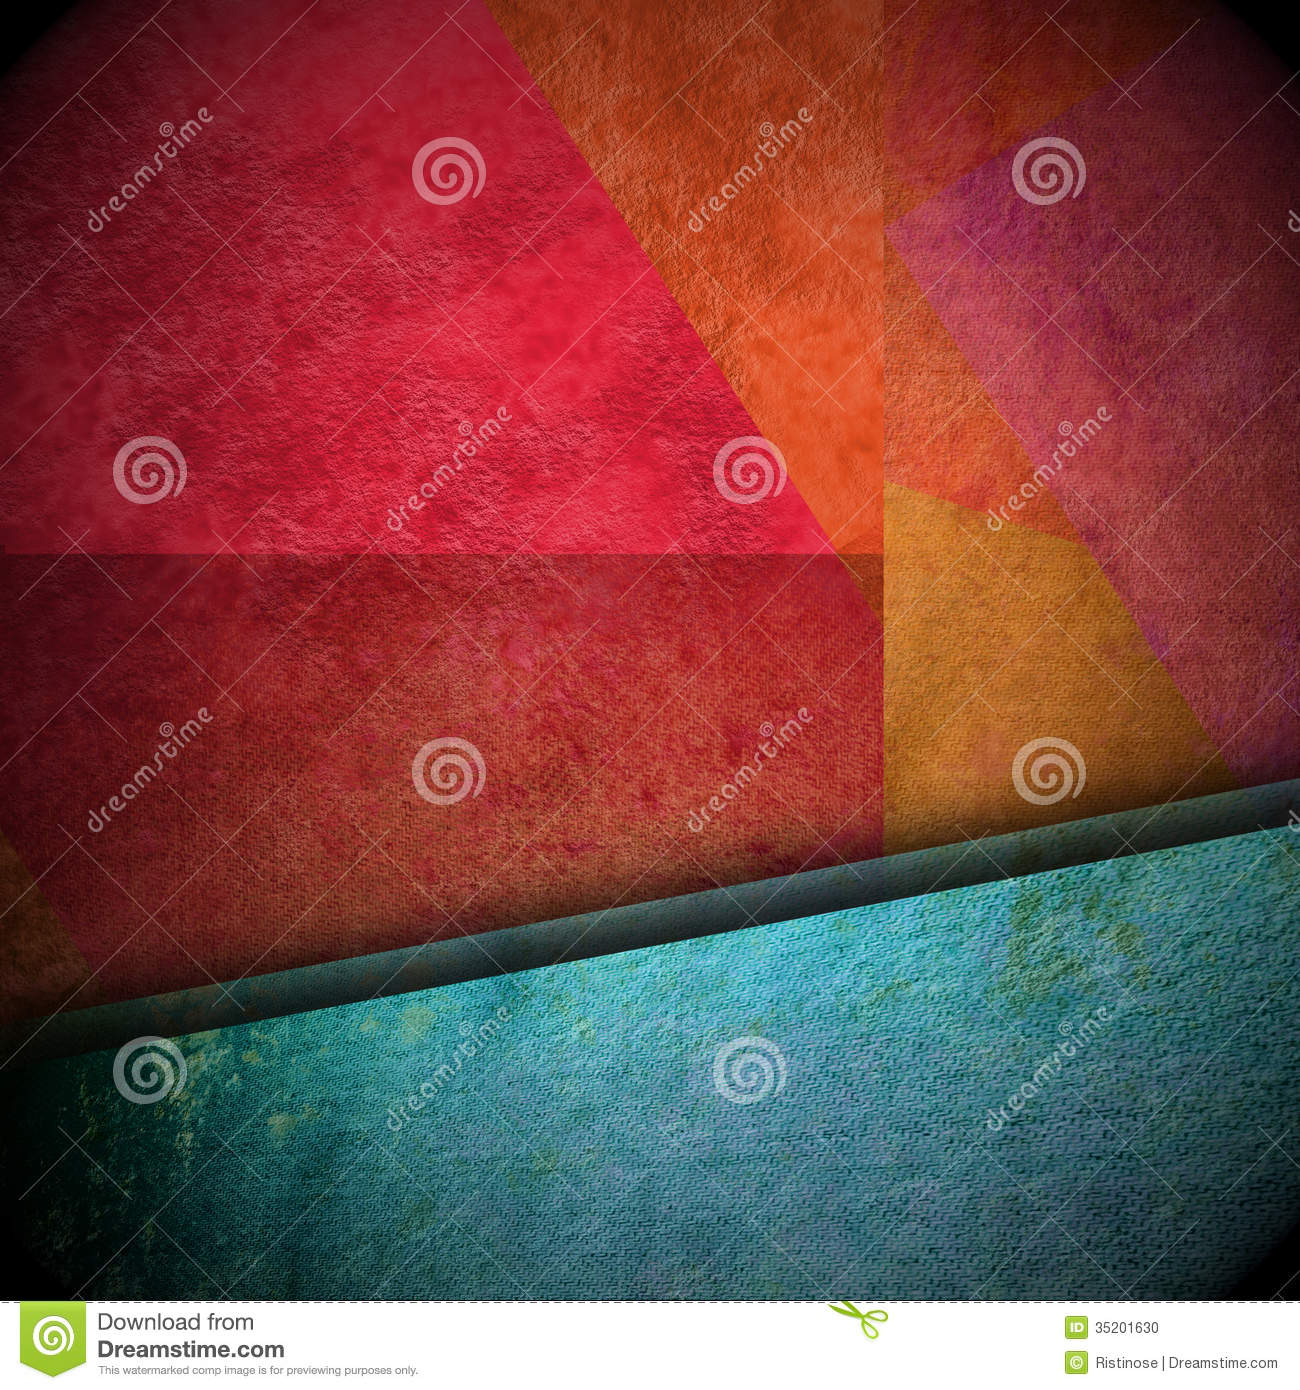 Background with grunge texture and metallic blue ribbon